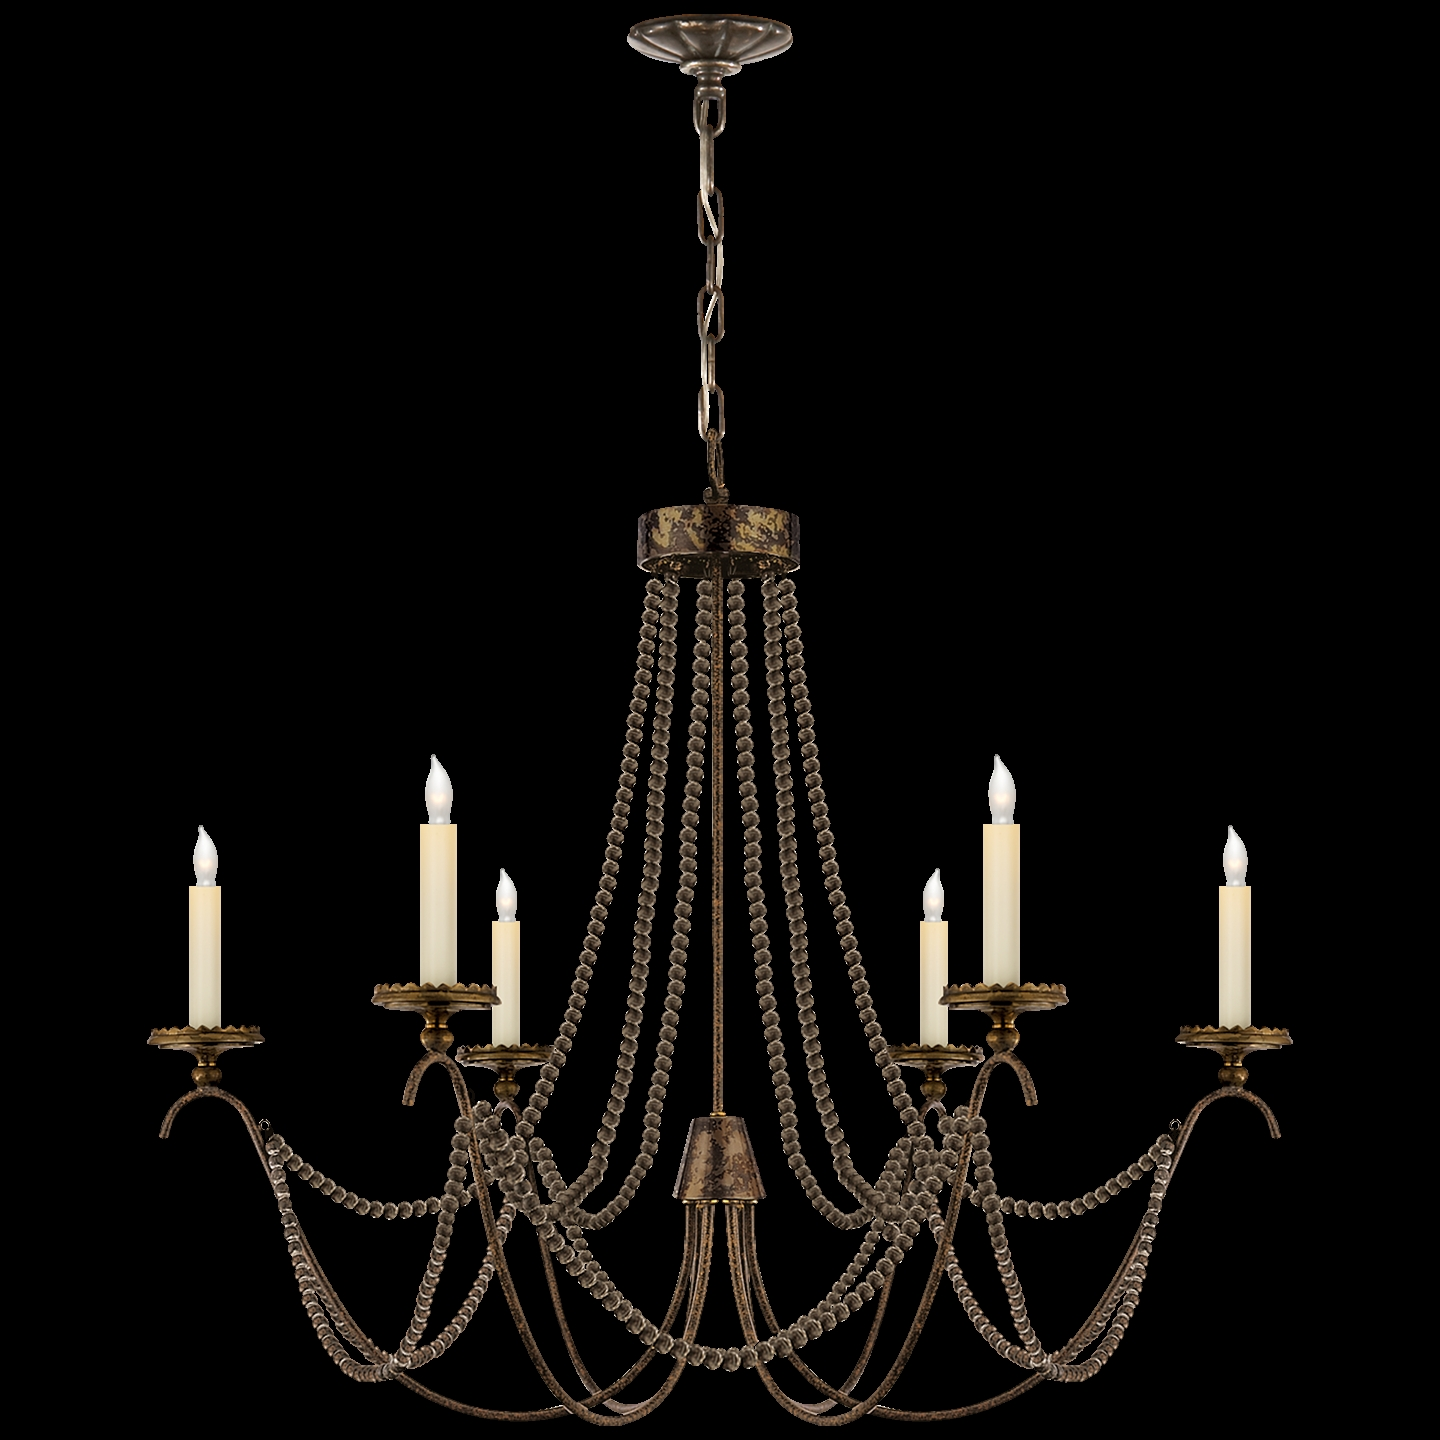 Design Of Circa Lighting Chandeliers Georgian Small Chandelier Regarding Georgian Chandeliers (Photo 12 of 15)